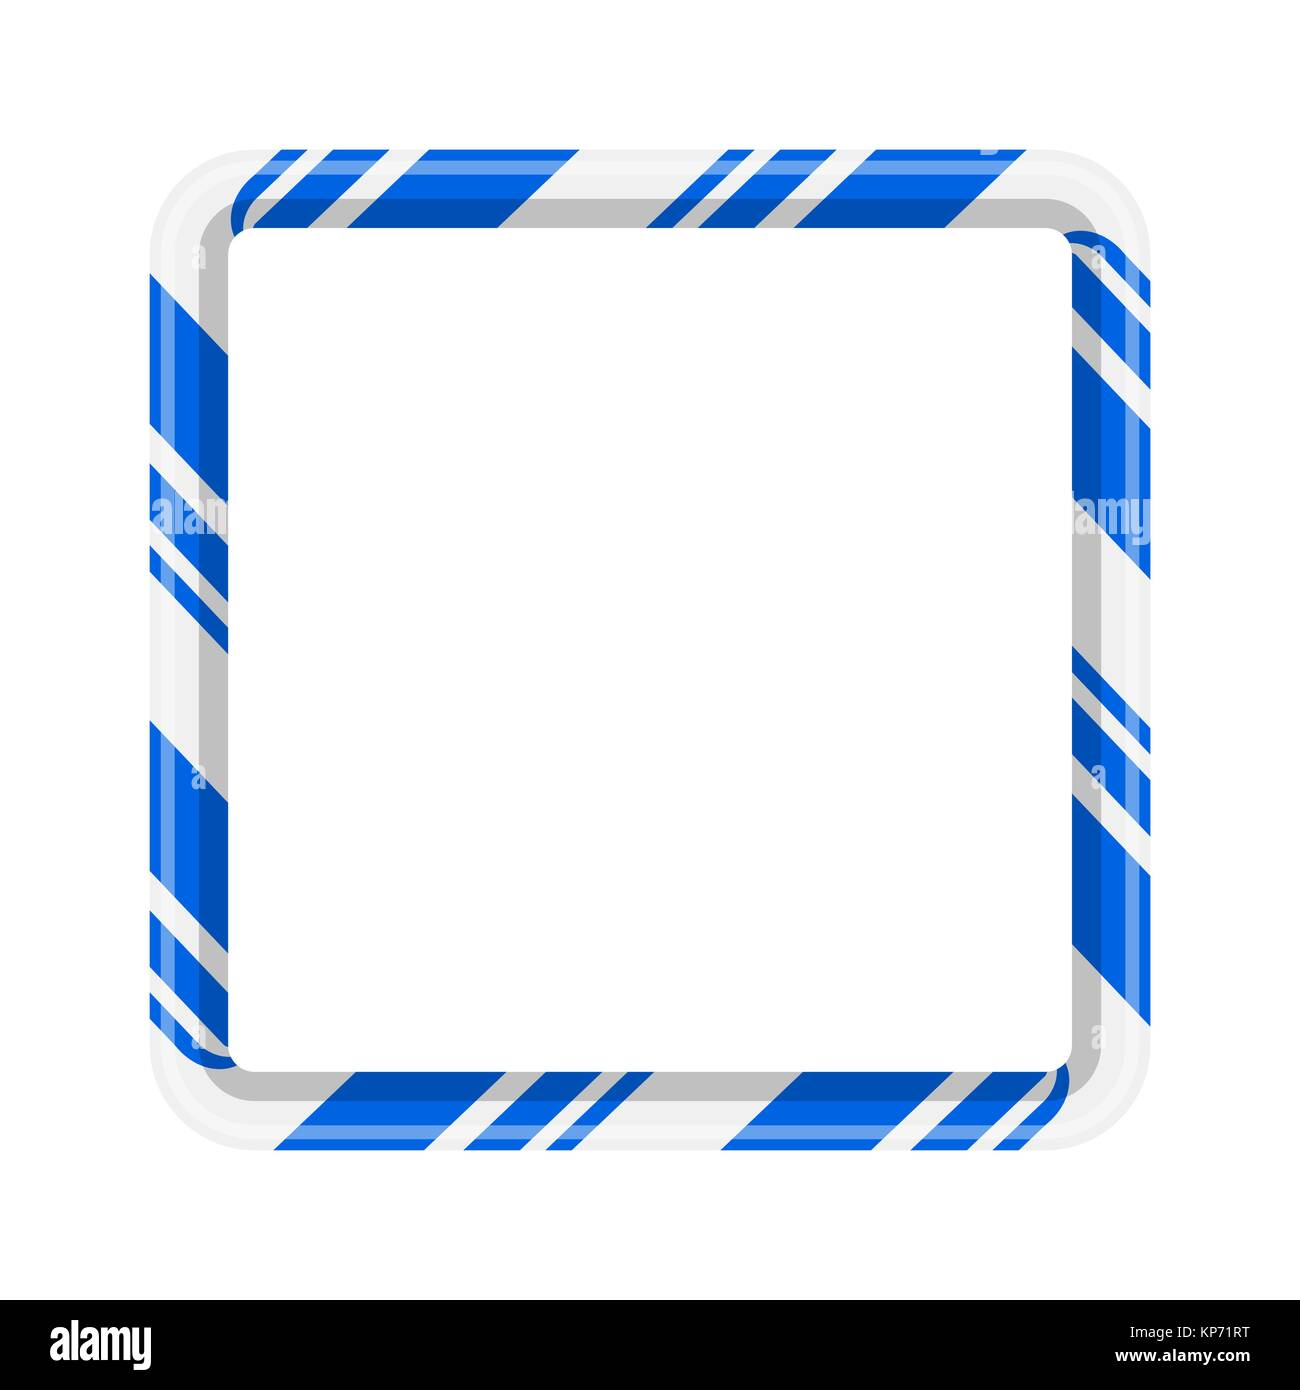 hight resolution of candy cane frame border for christmas design isolated on white background